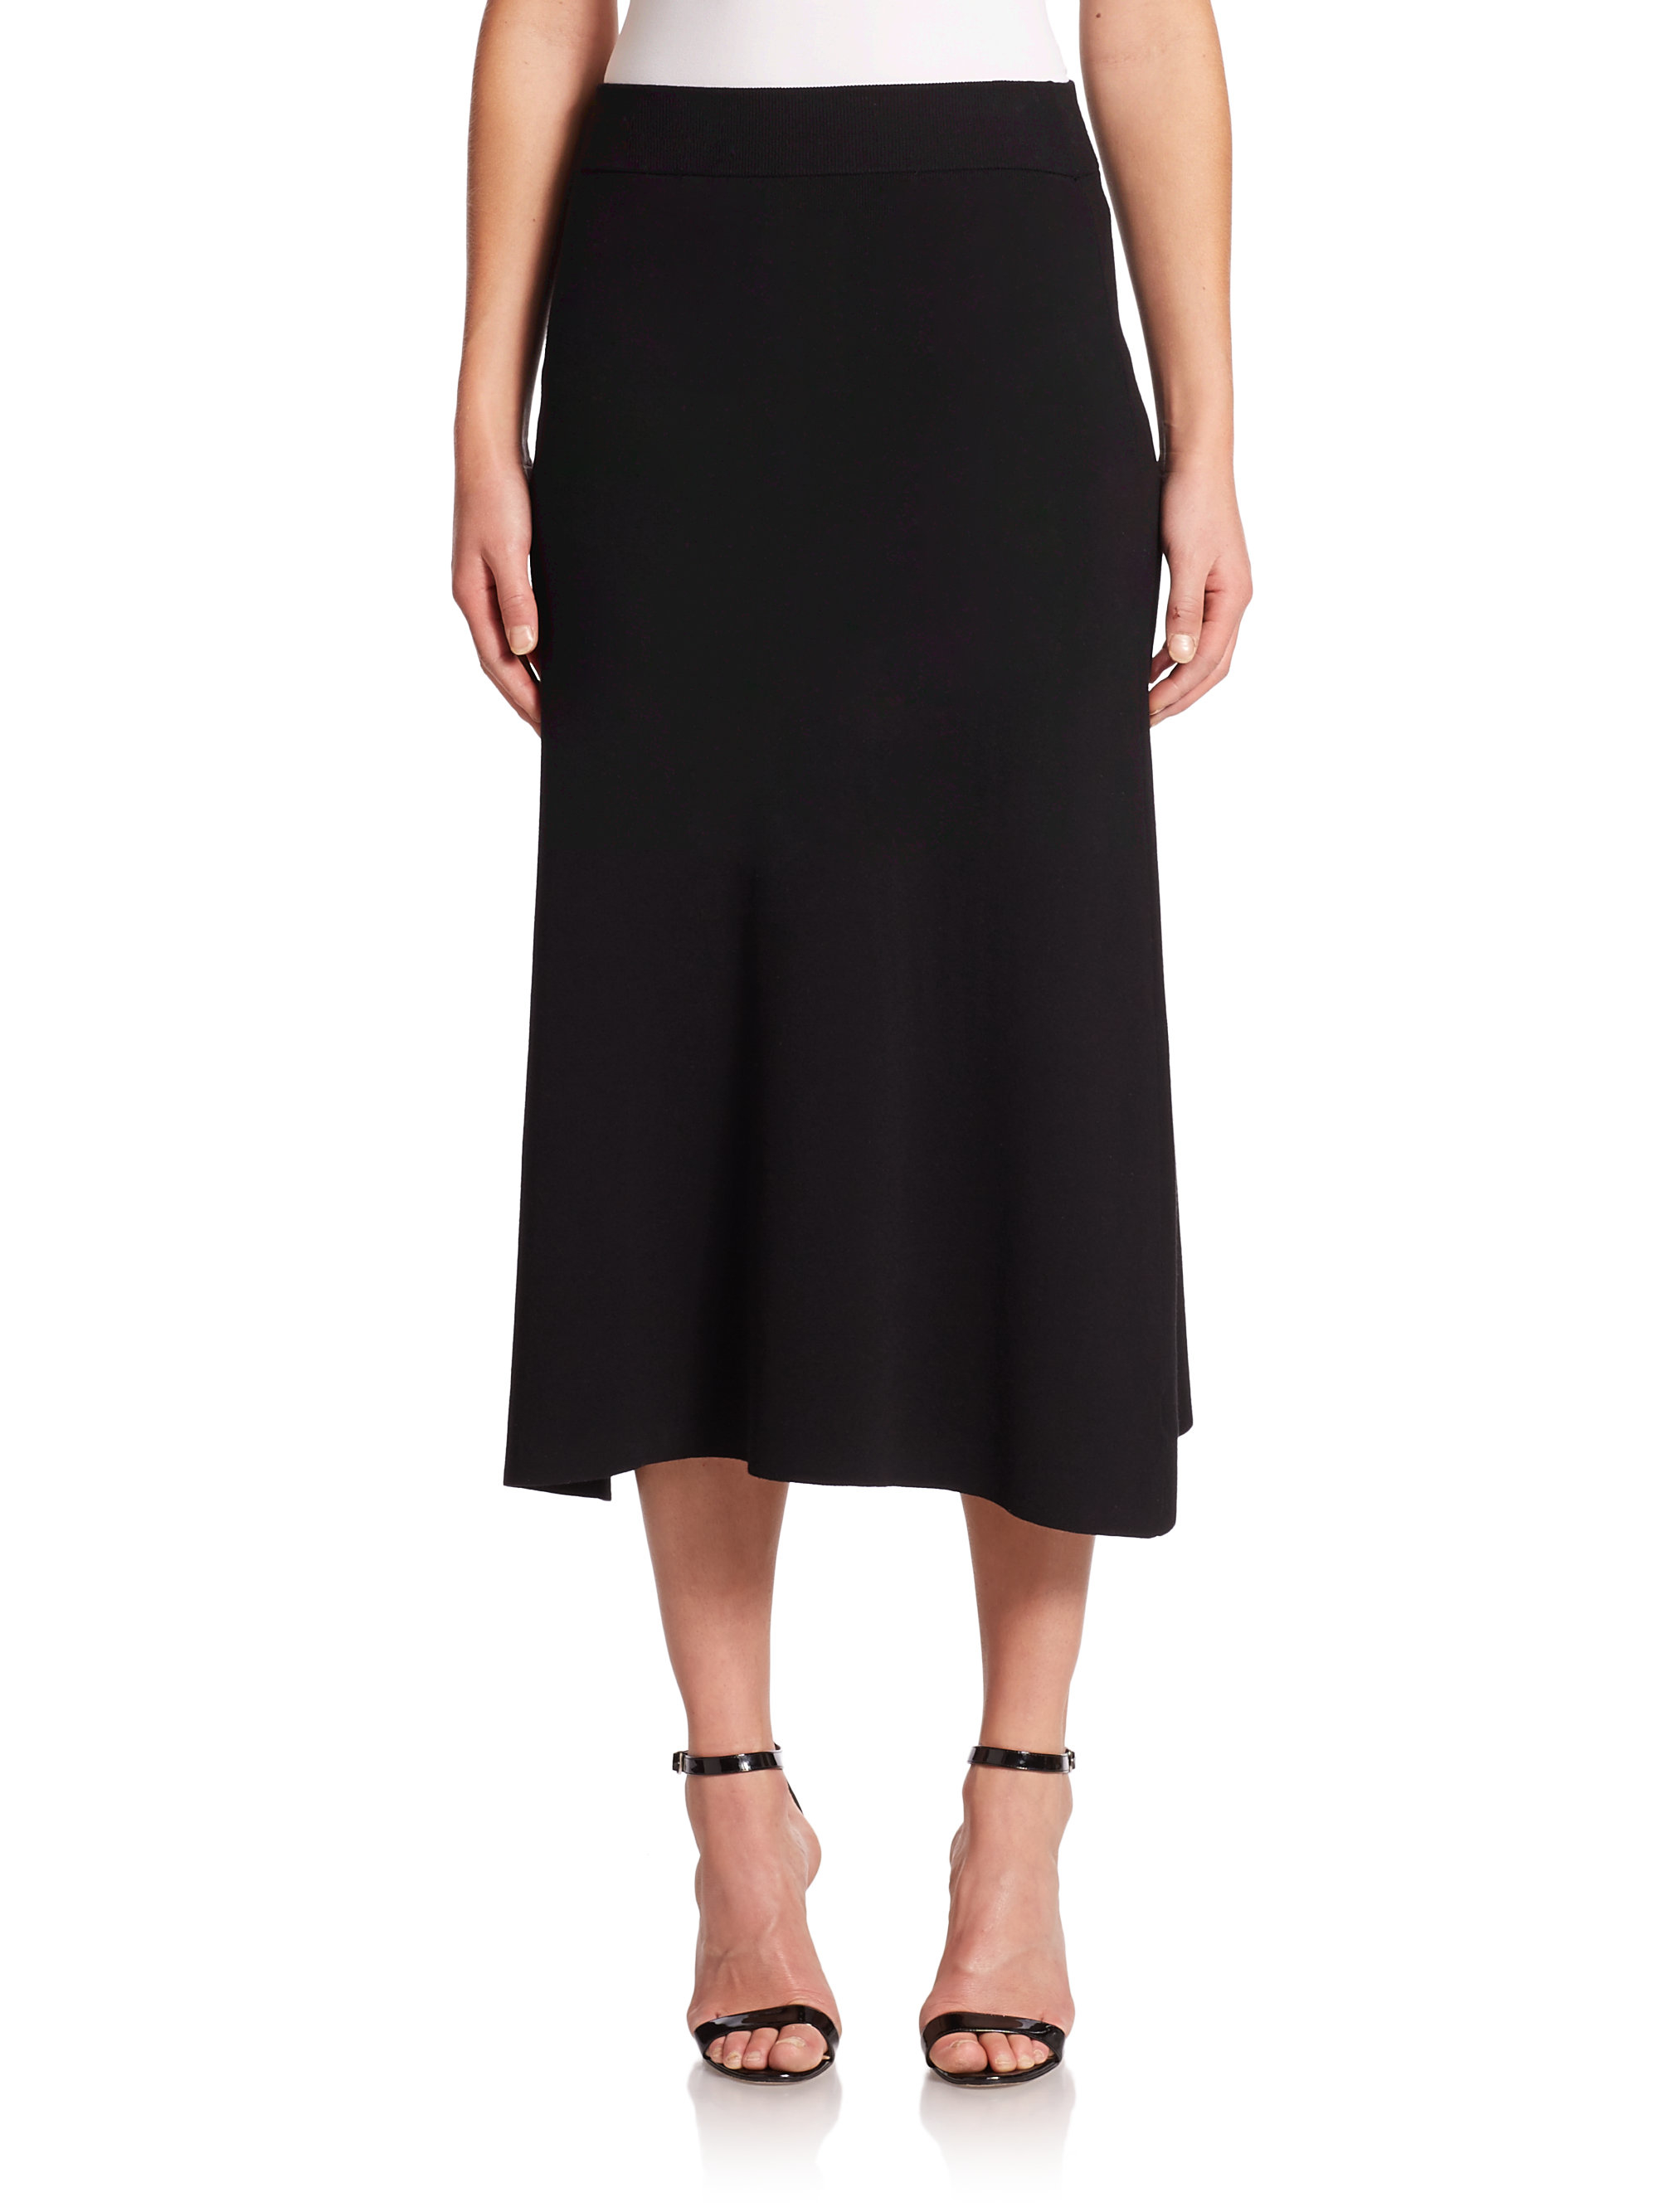 A.l.c. Fit-&-flare Cook Skirt in Black